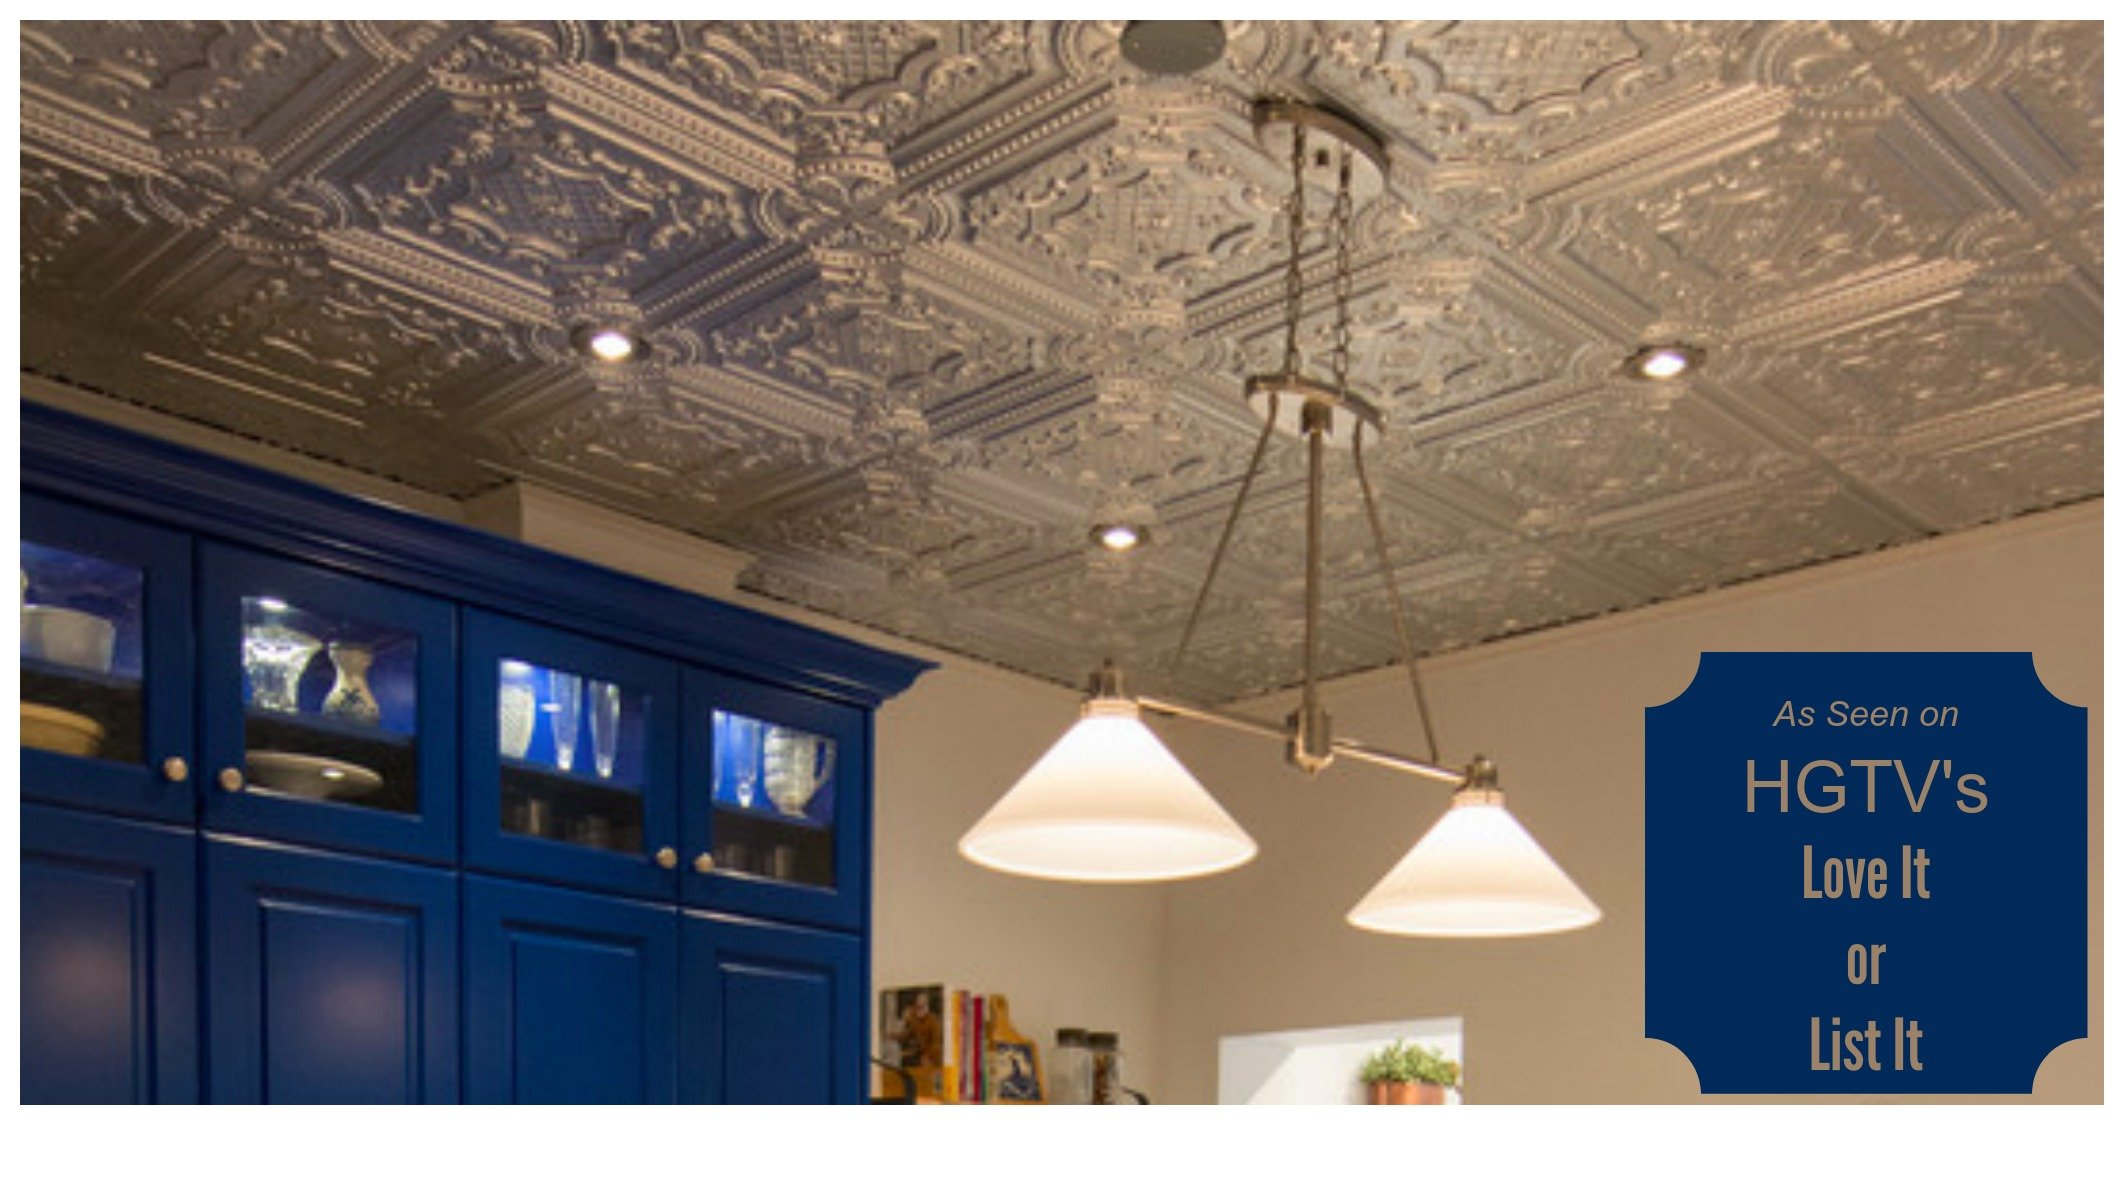 decorative ceiling tiles as seen on hgtv love it or list it - Decorative Ceiling Tiles